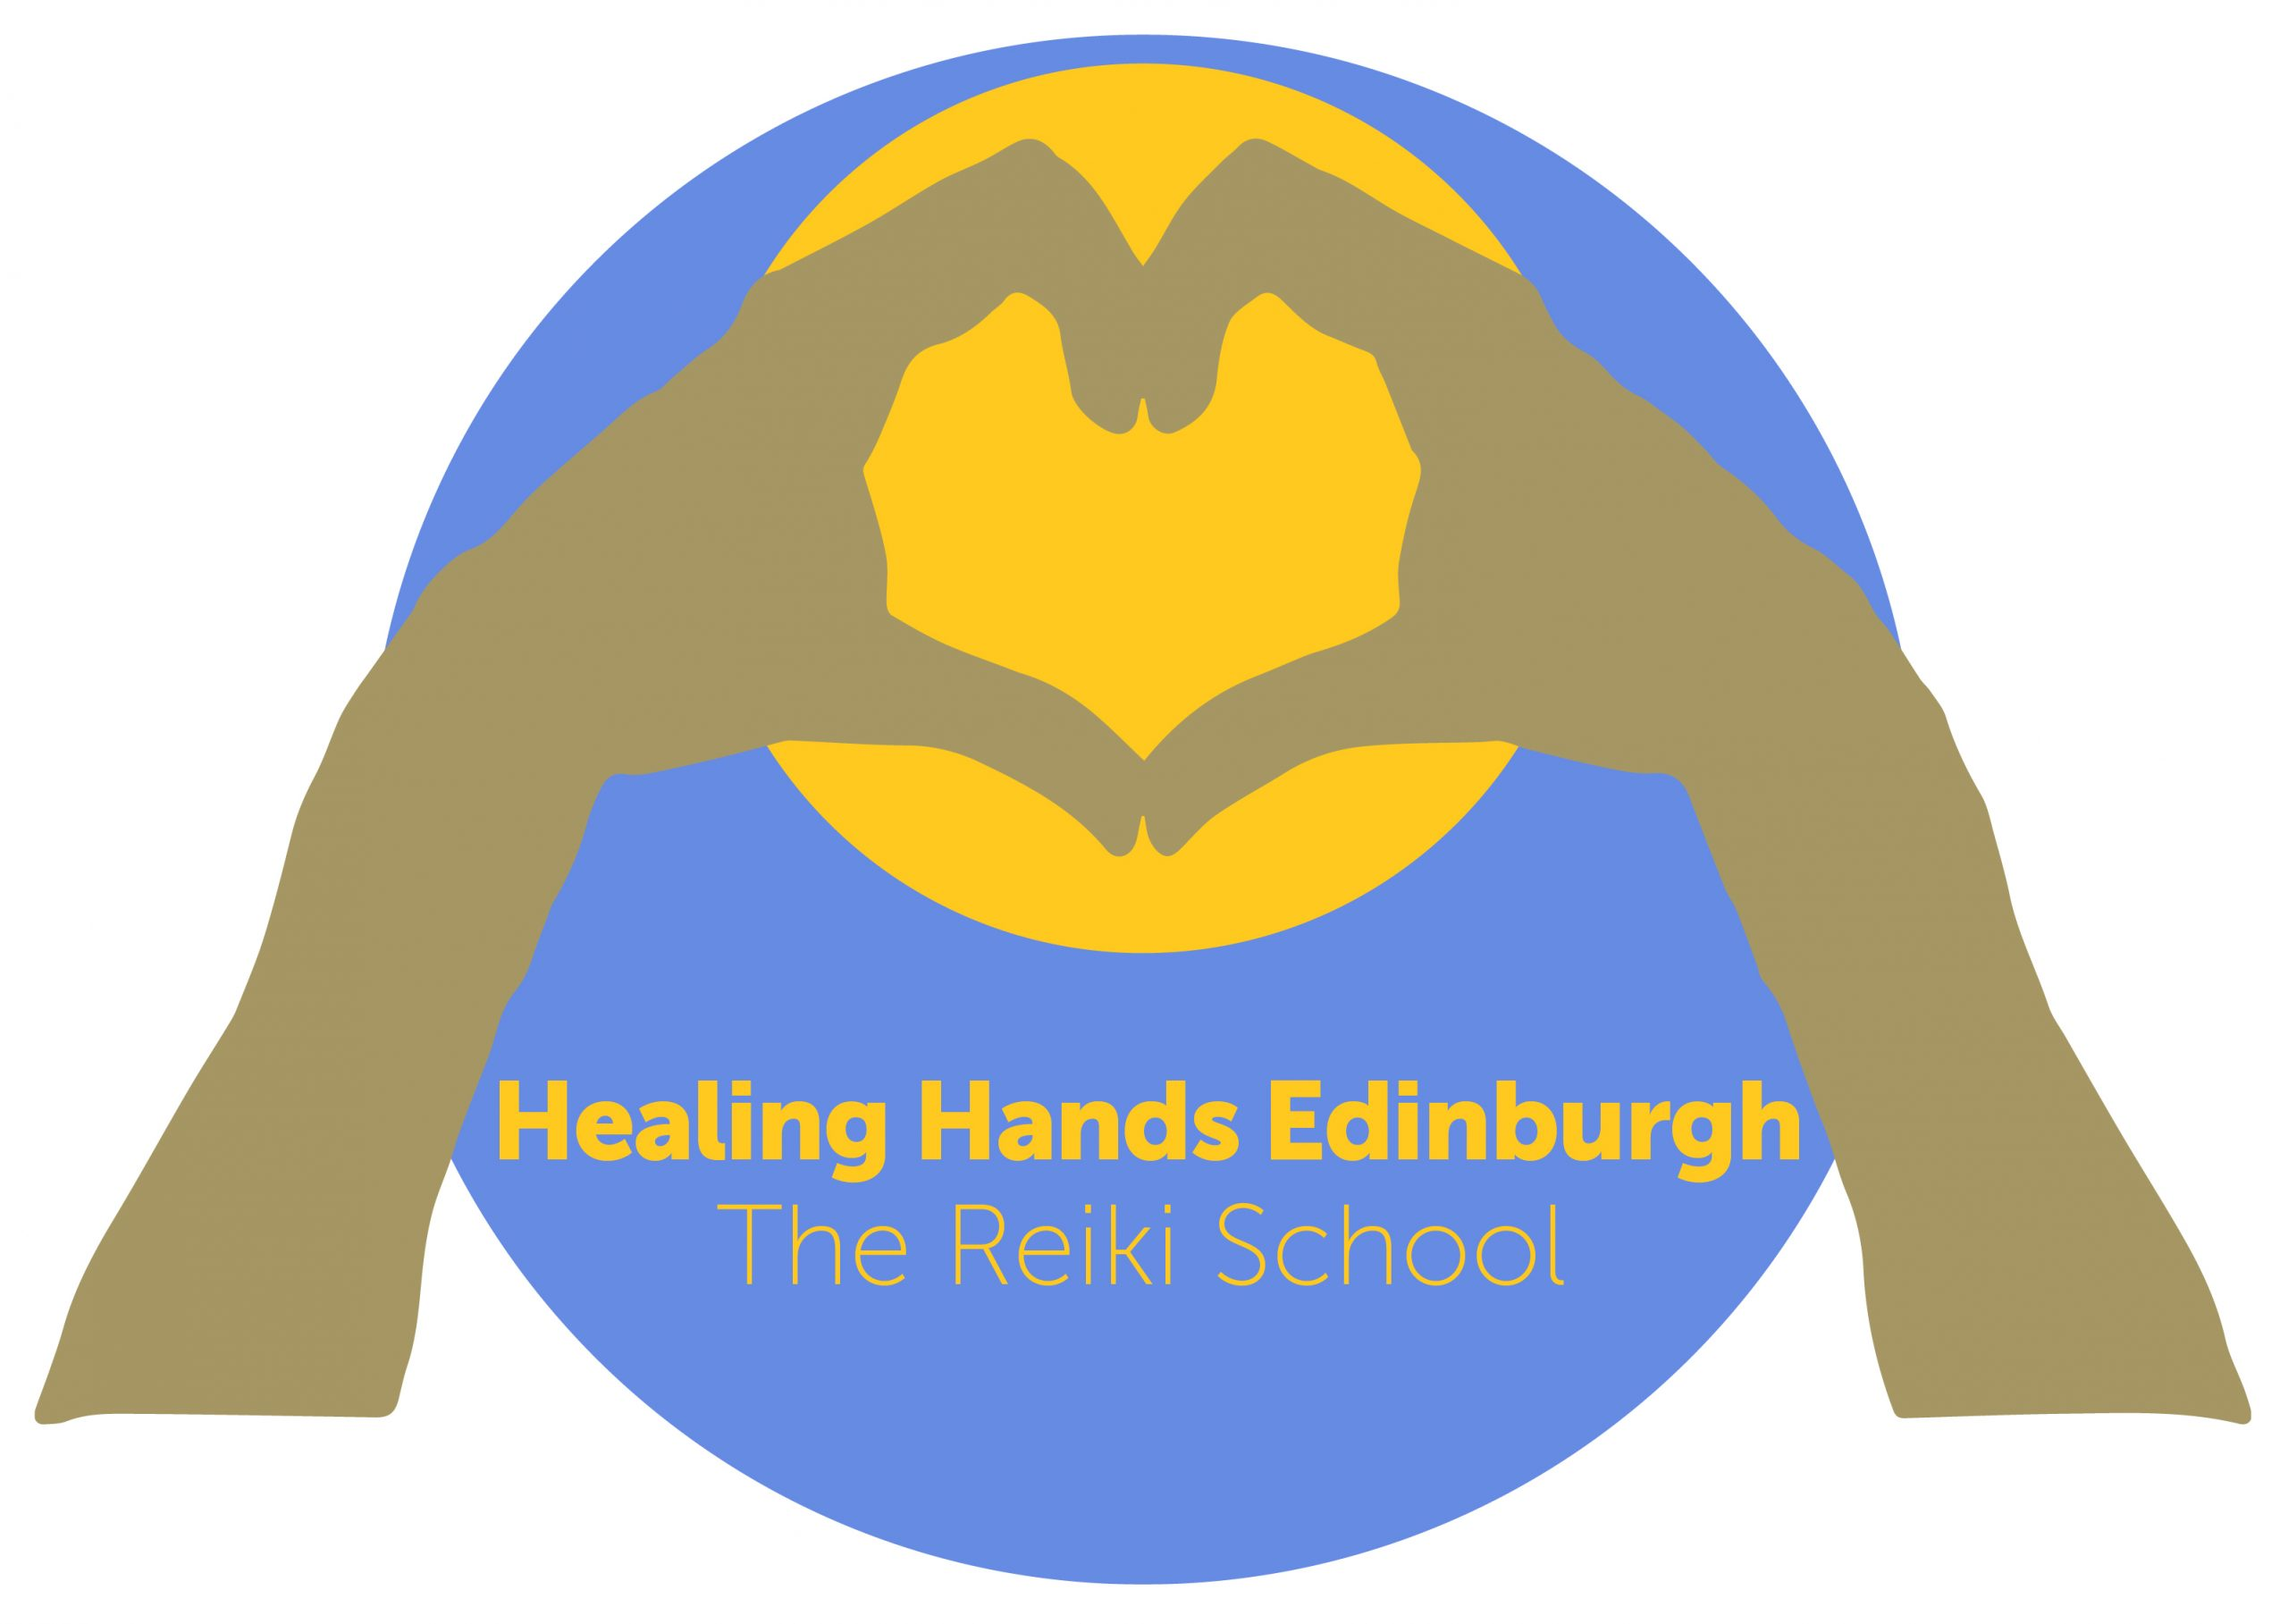 Healing Hands Edinburgh Reiki School